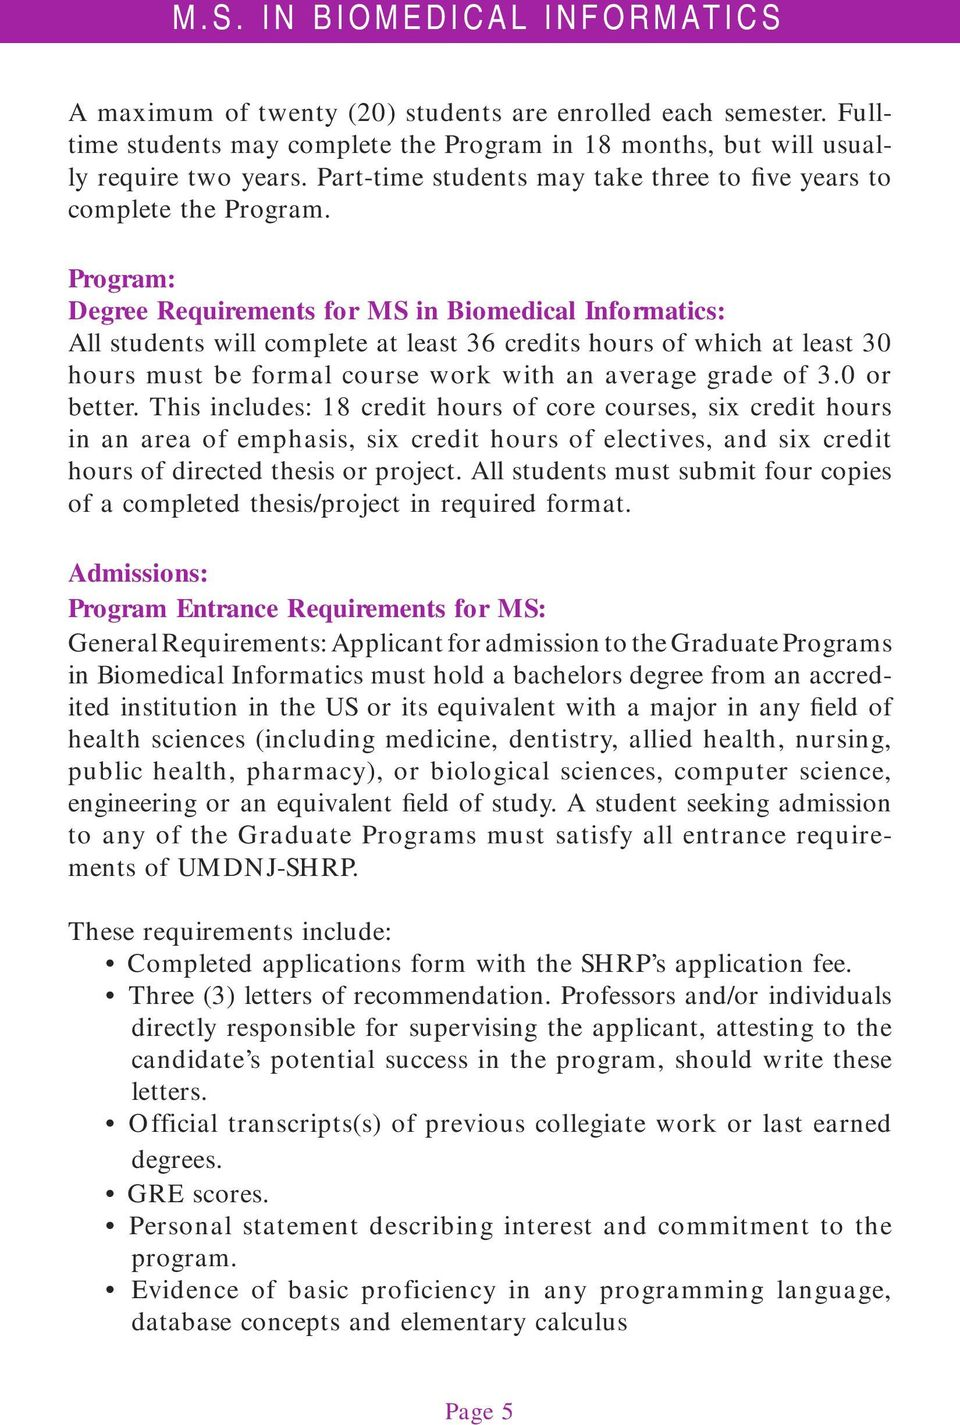 Program: Degree Requirements for MS in Biomedical Informatics: All students will complete at least 36 credits hours of which at least 30 hours must be formal course work with an average grade of 3.